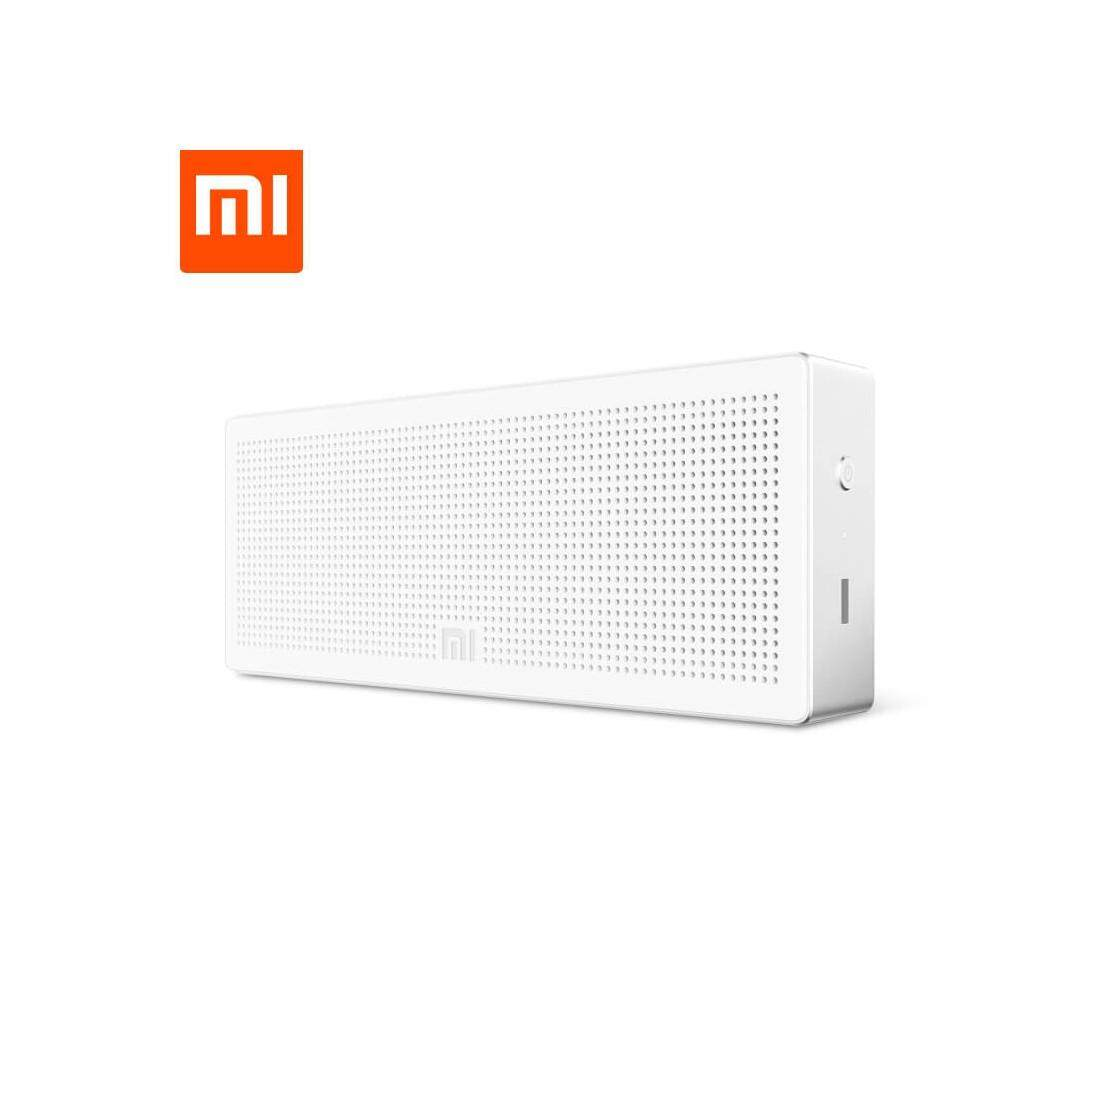 Original Xiaomi Mi Bluetooth Speaker 2 ลำโพงบูลทูธ Square Box 2 Stereo Portable Bluetooth 4.2 HD High Definition Sound Quality Play Music